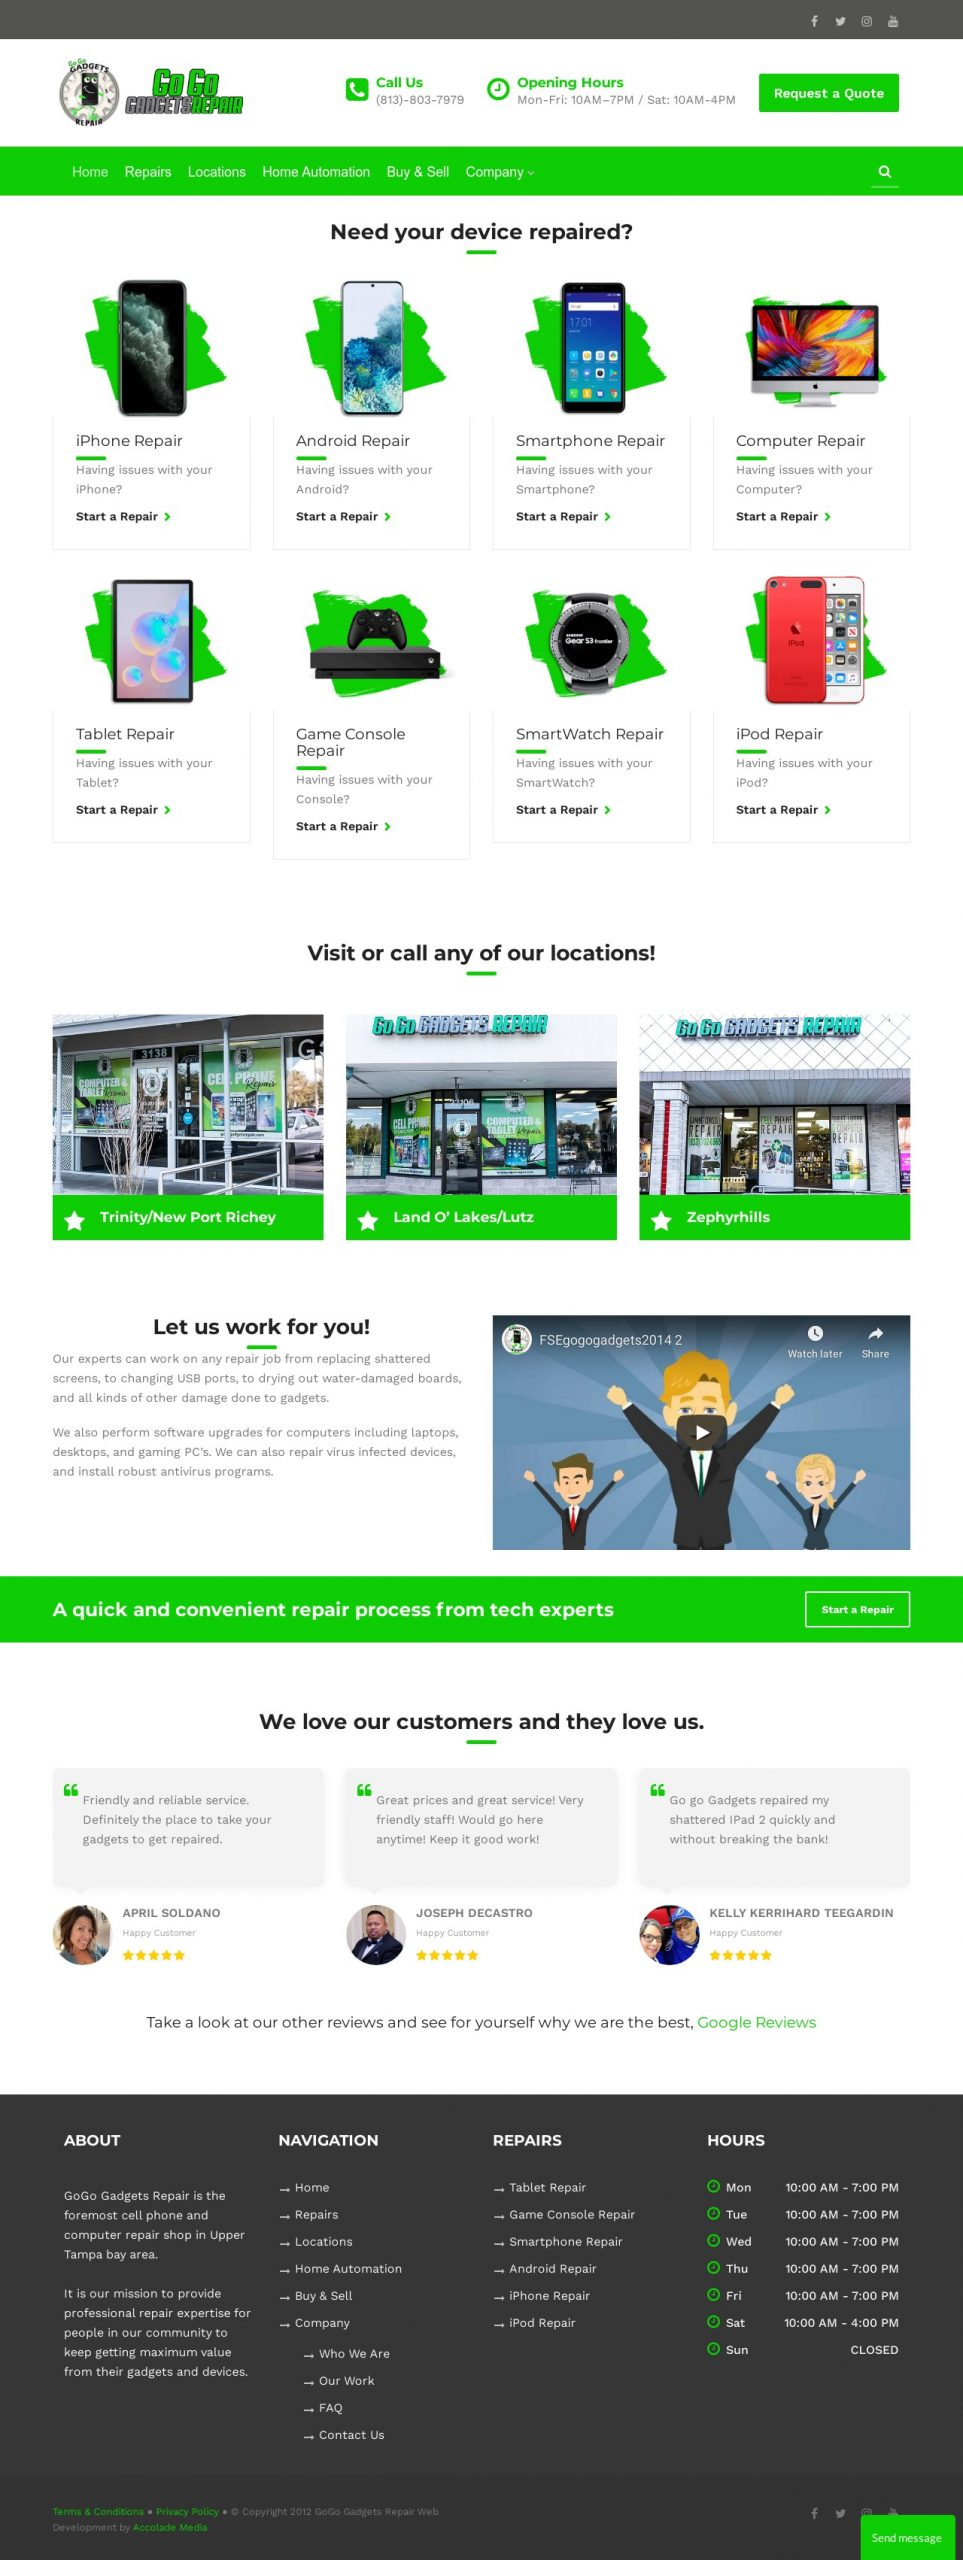 gogogadetsrepair-website-design-layout